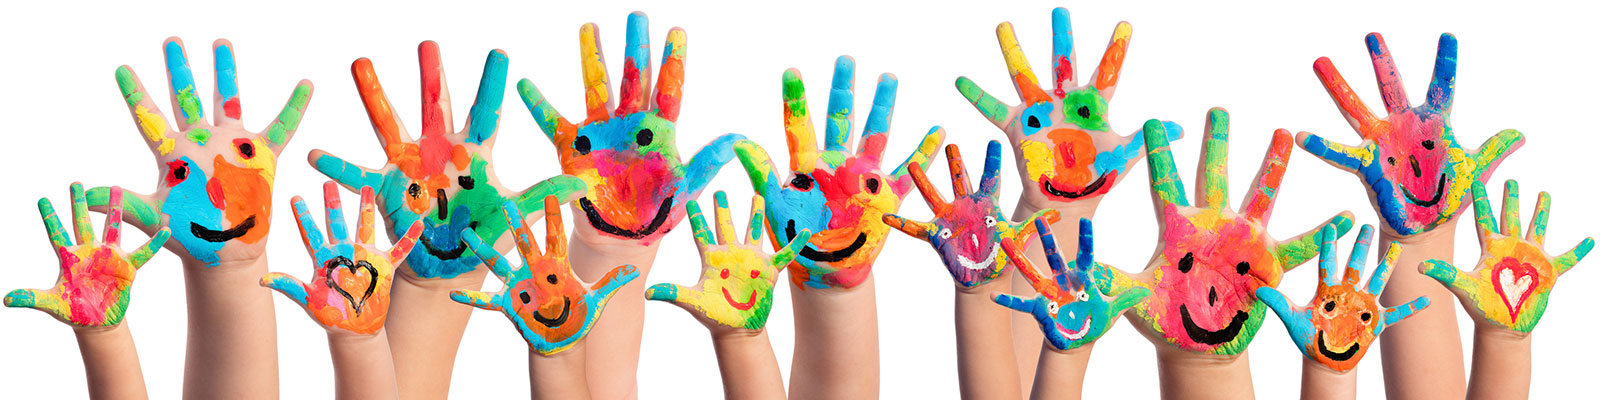 finger-painted raised hands with smiles and heart